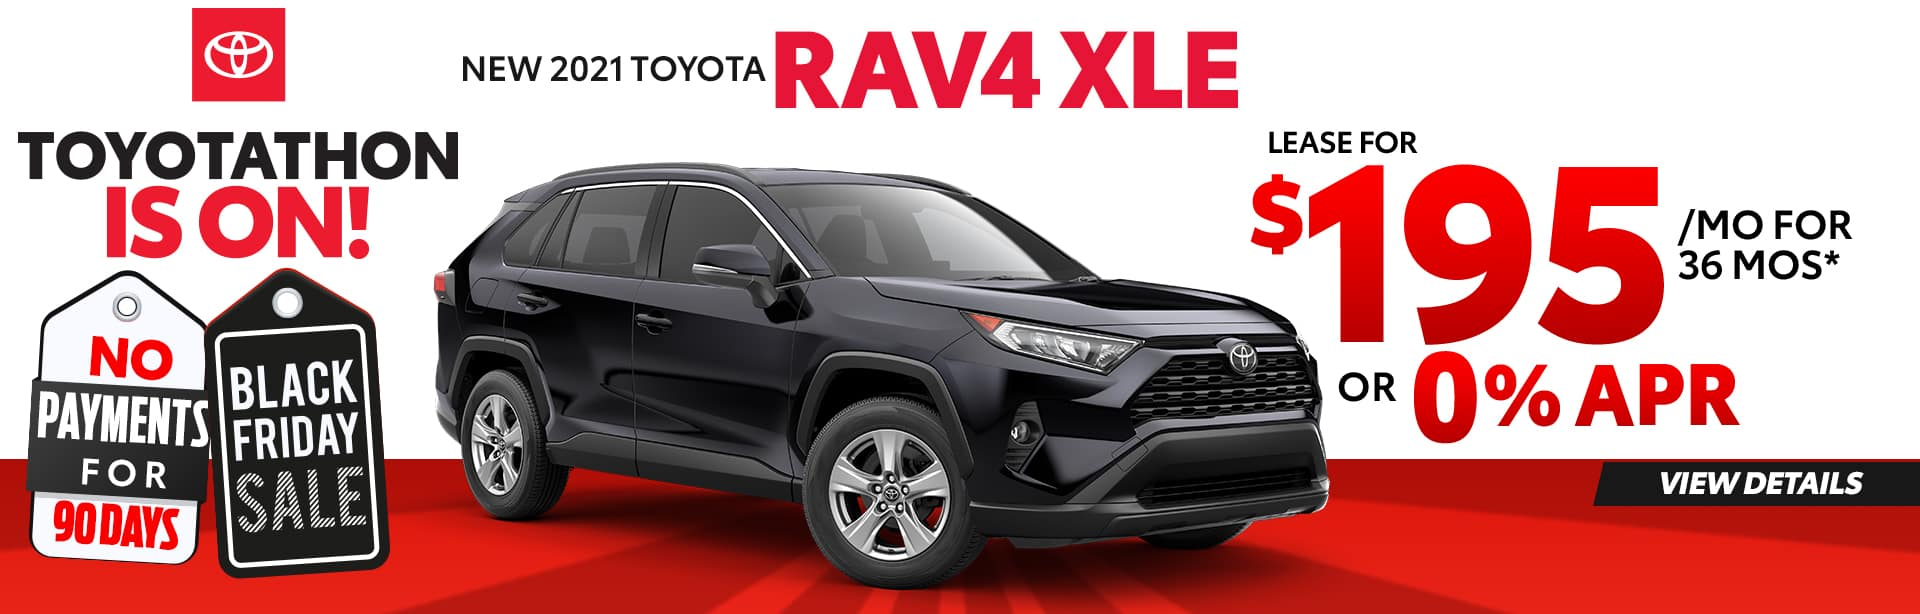 DOTO81098-03-Black-Friday-Slides-ENG-rav4-xle